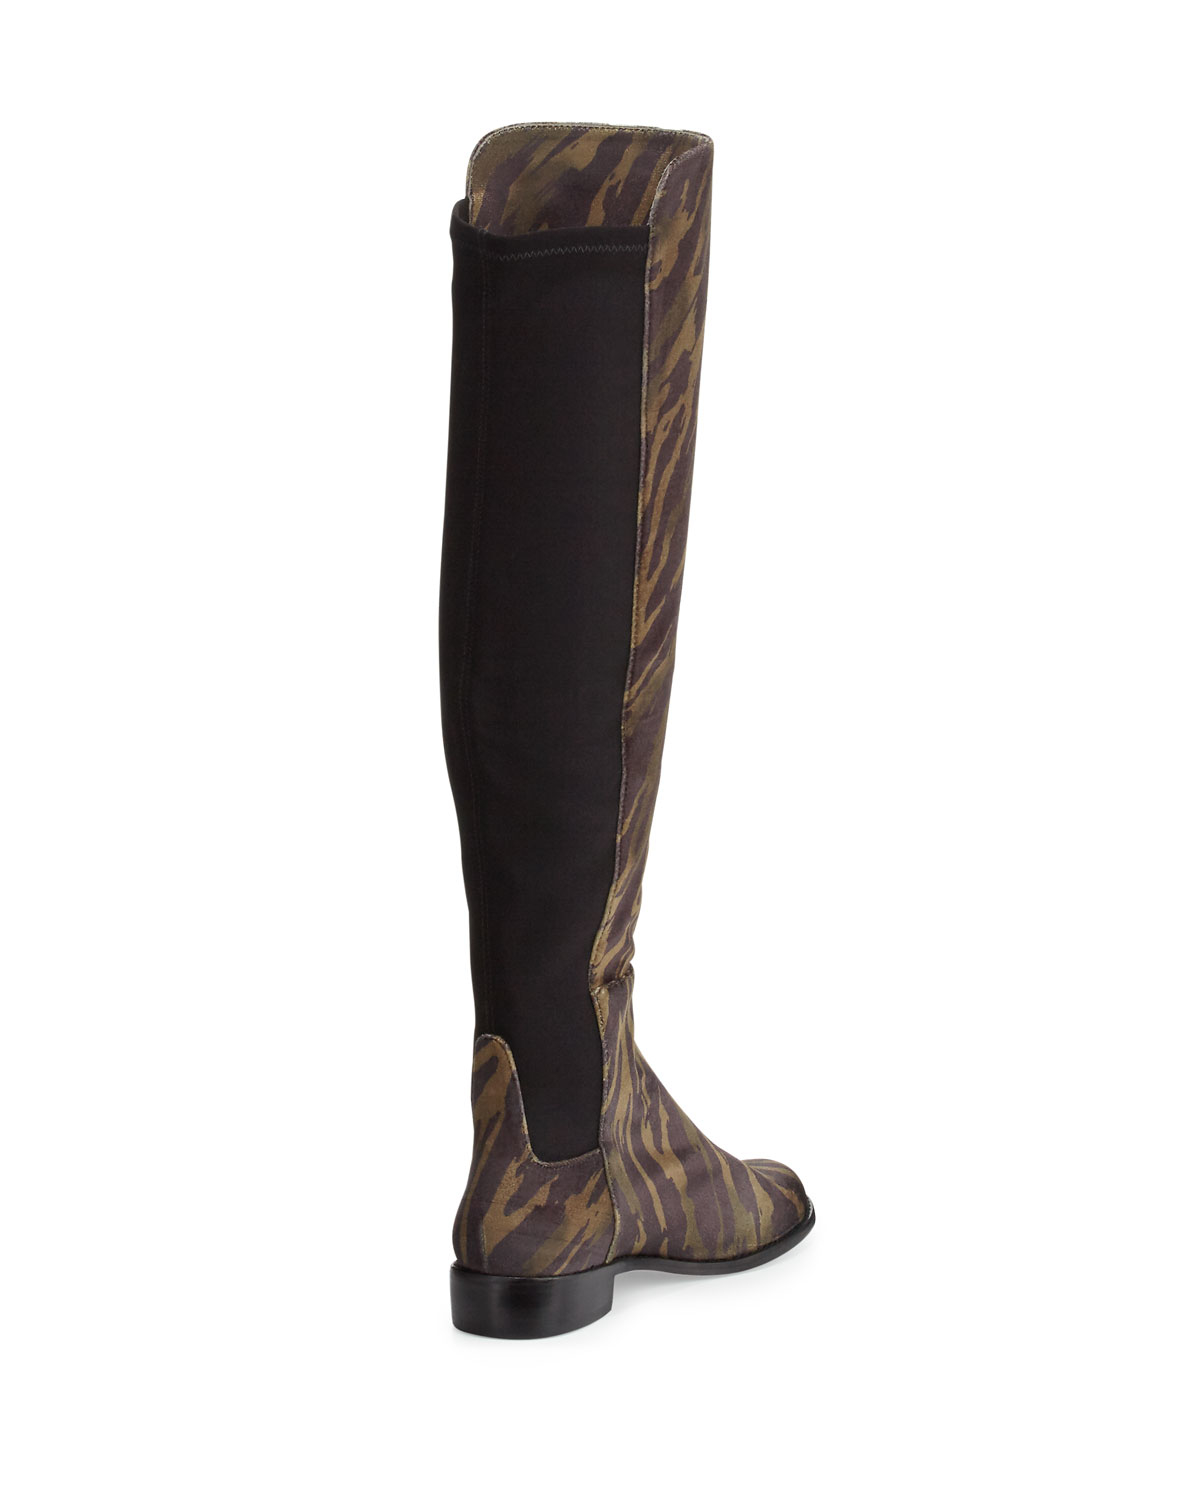 3a8d59ef06d Lyst - Stuart Weitzman Mainstay Suede Over-the-knee Boot in Brown